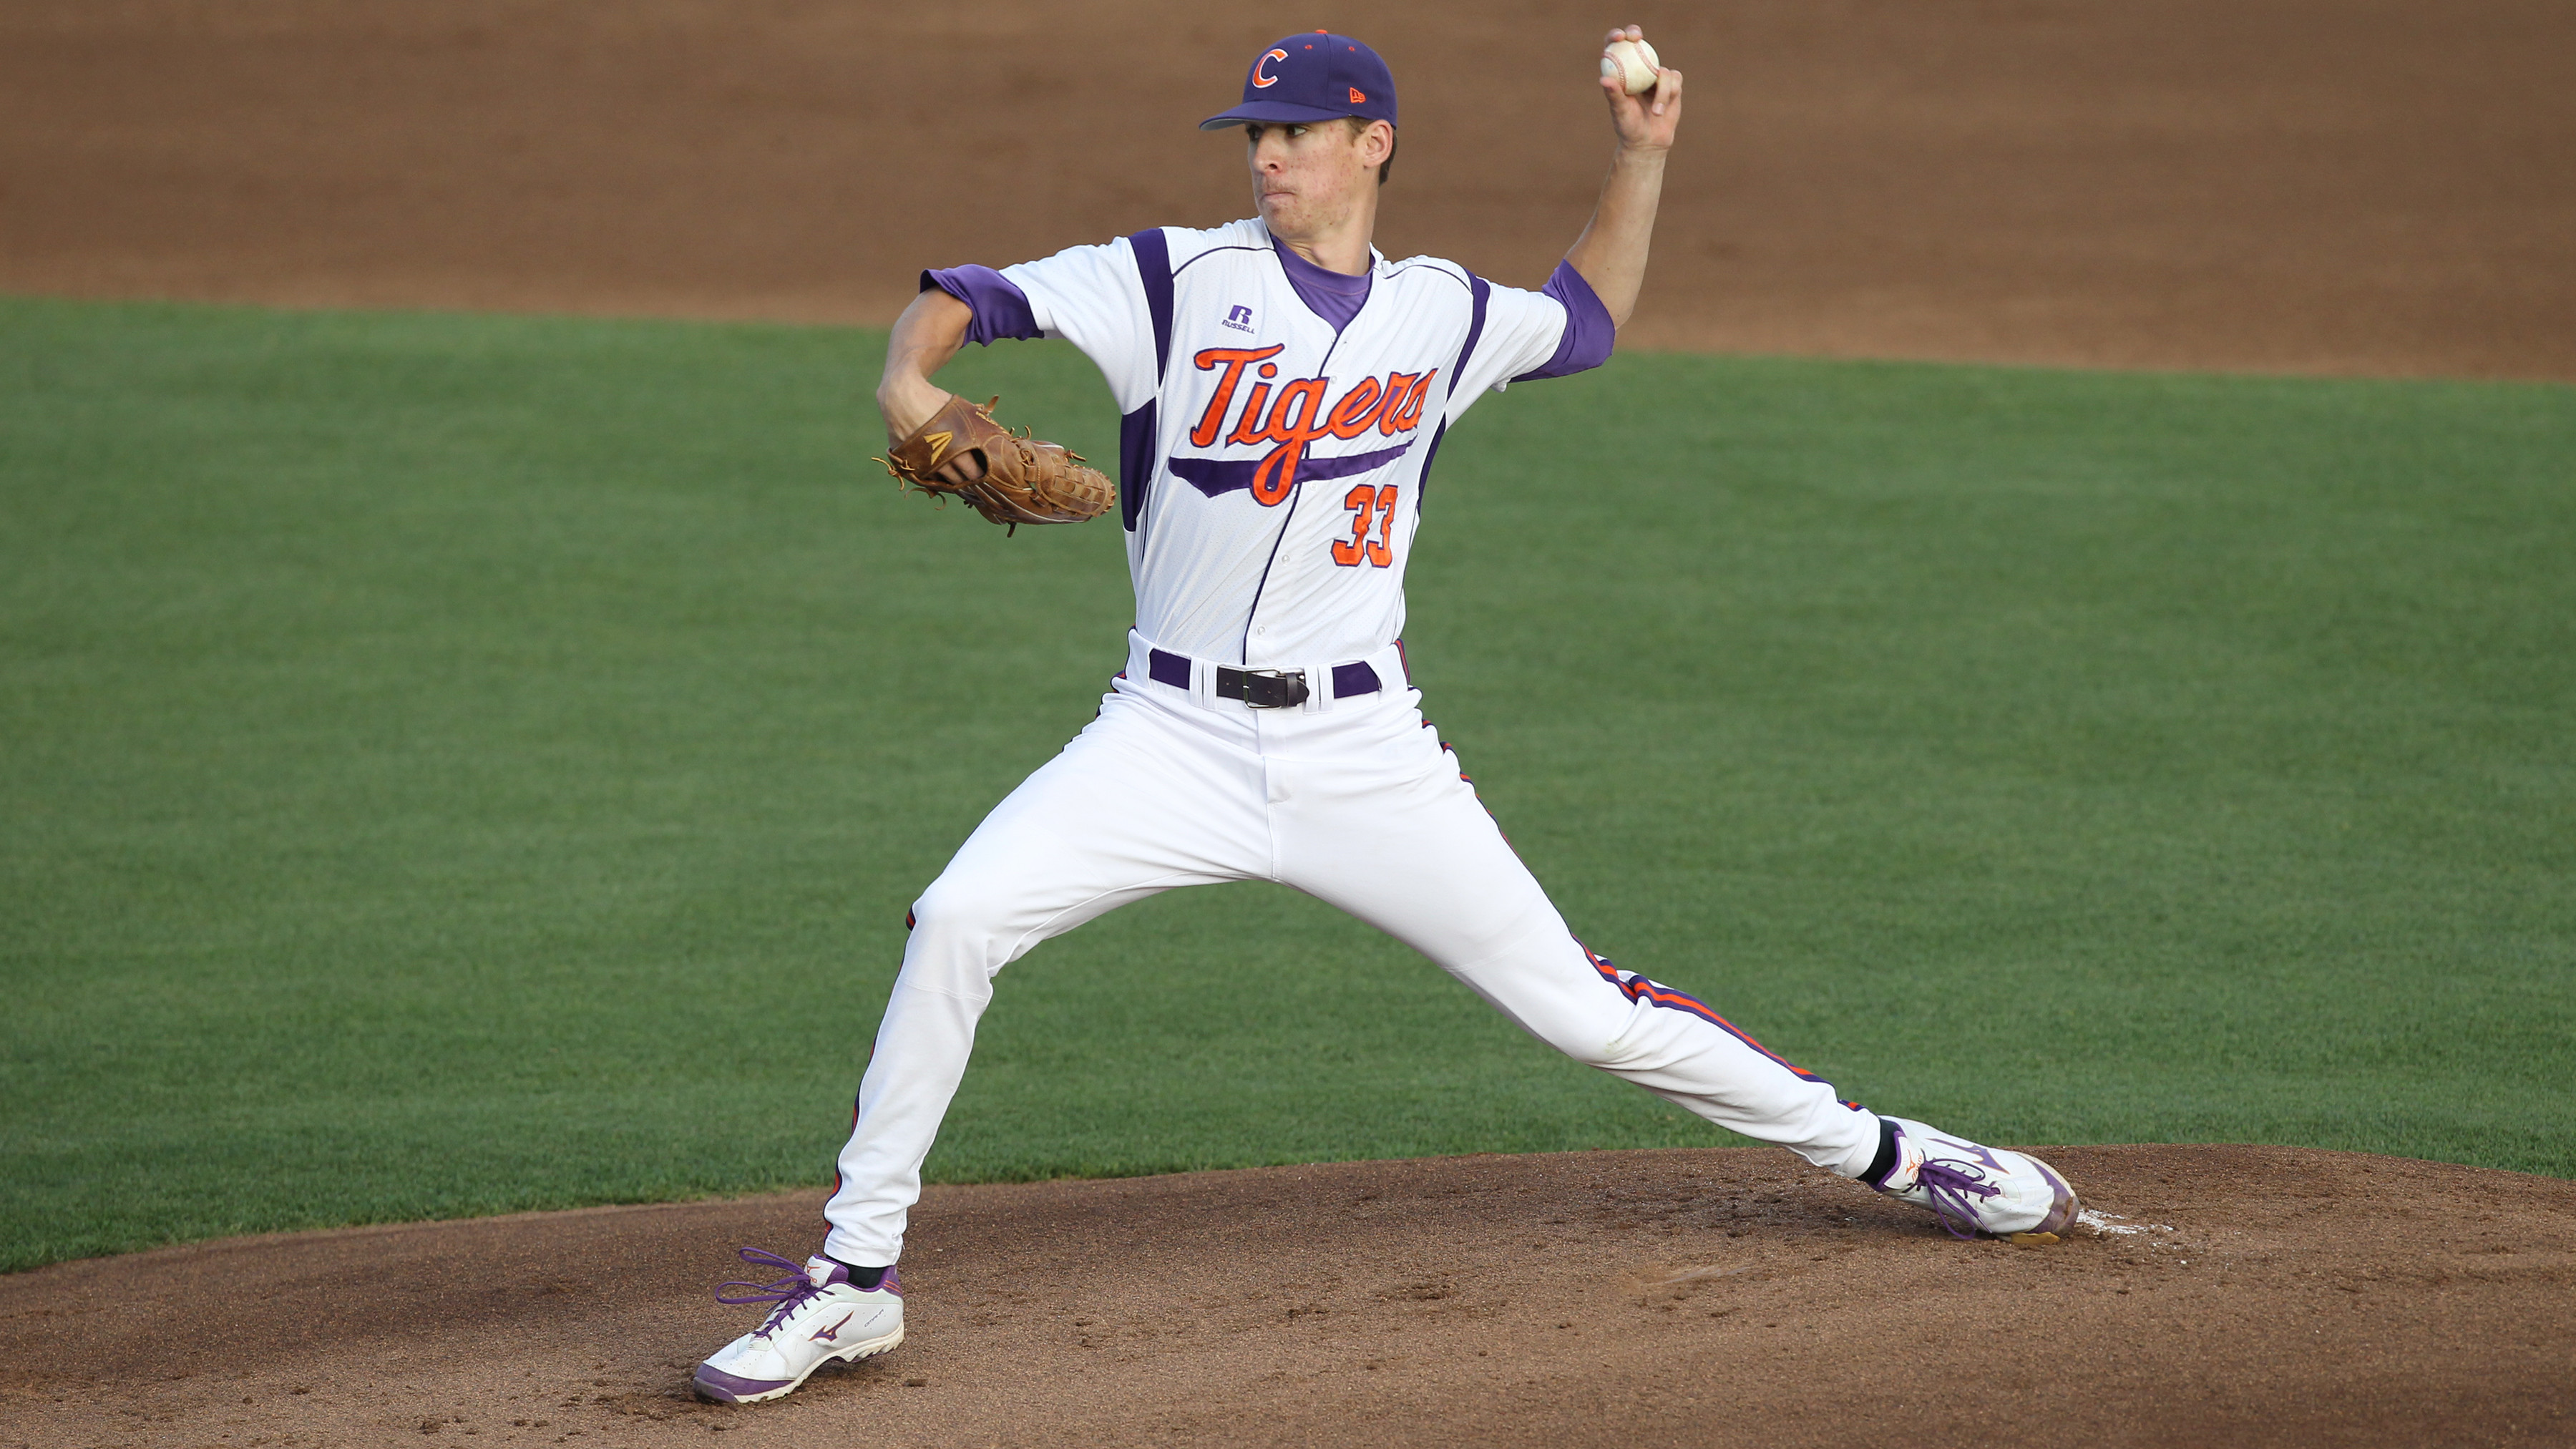 Erwin Pitches Tigers Over Dukes 8-0 Friday